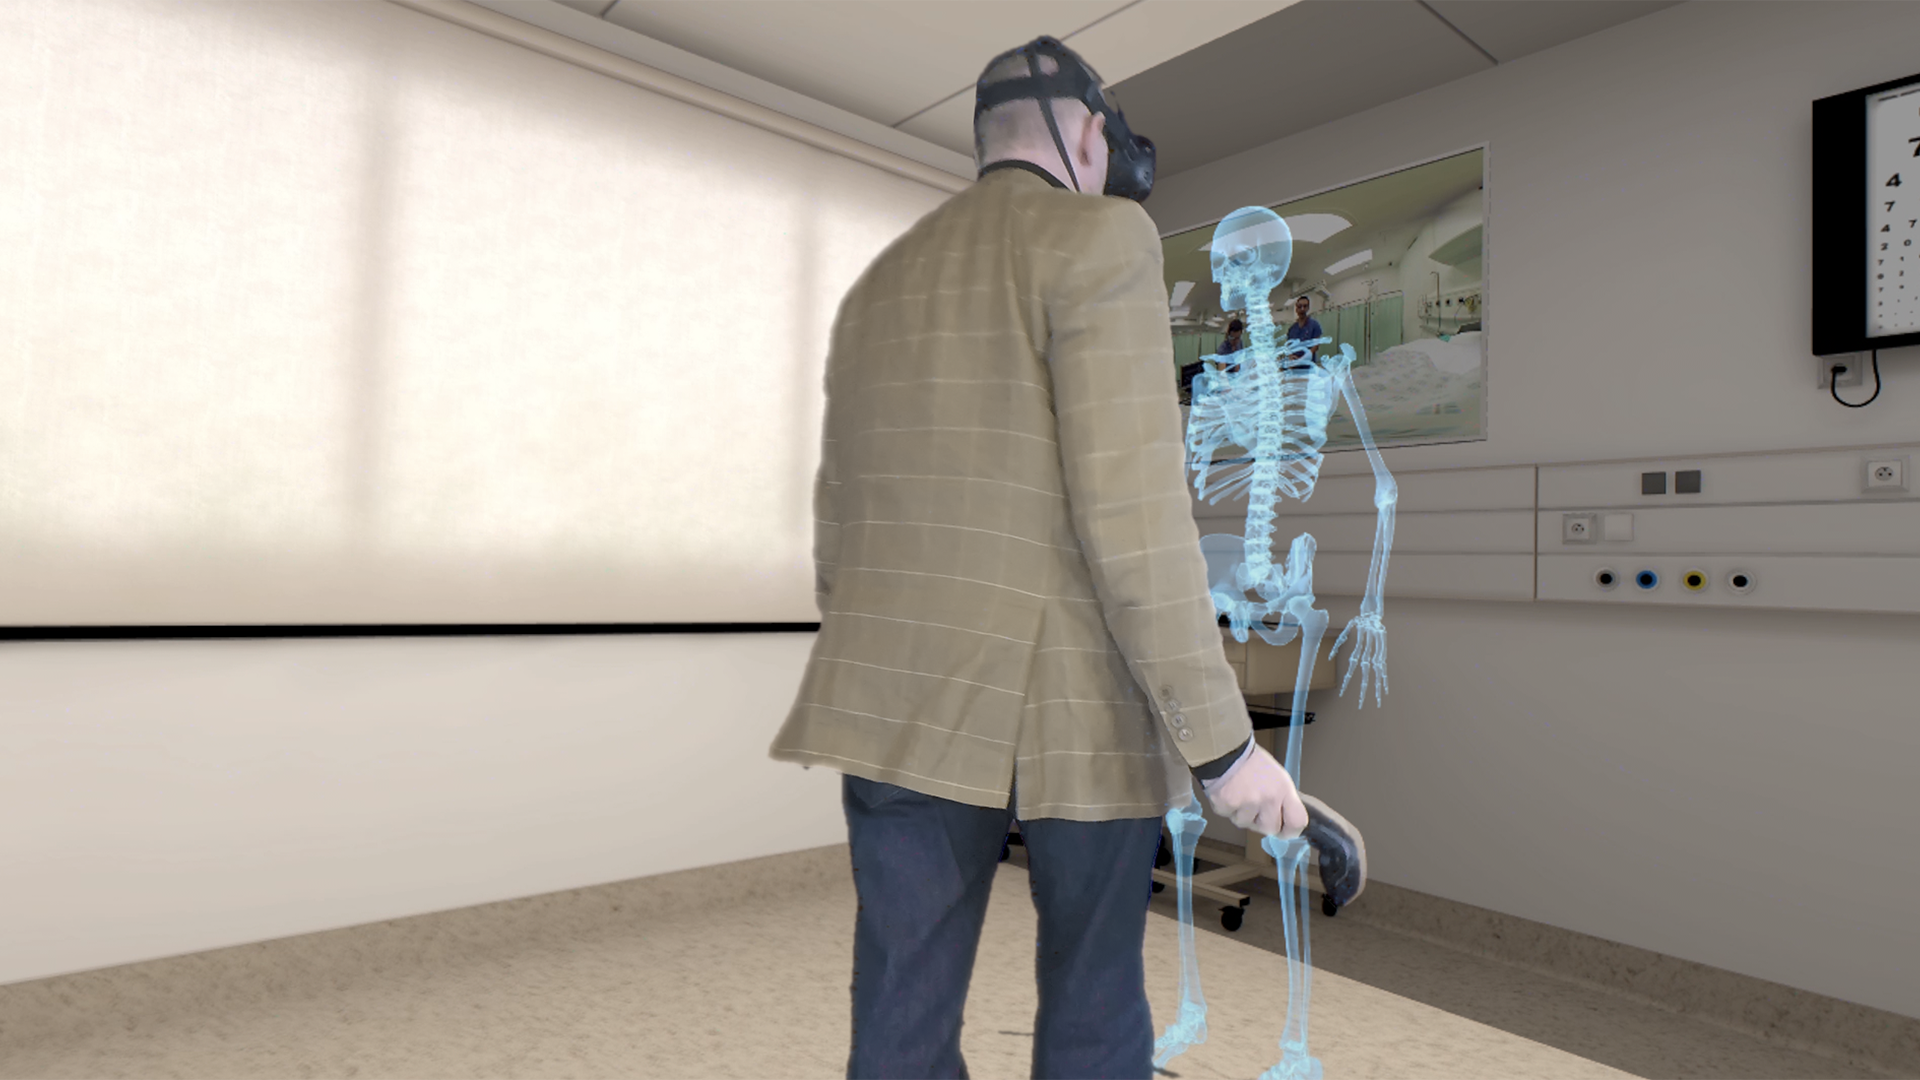 A person views an augmented reality medical environment